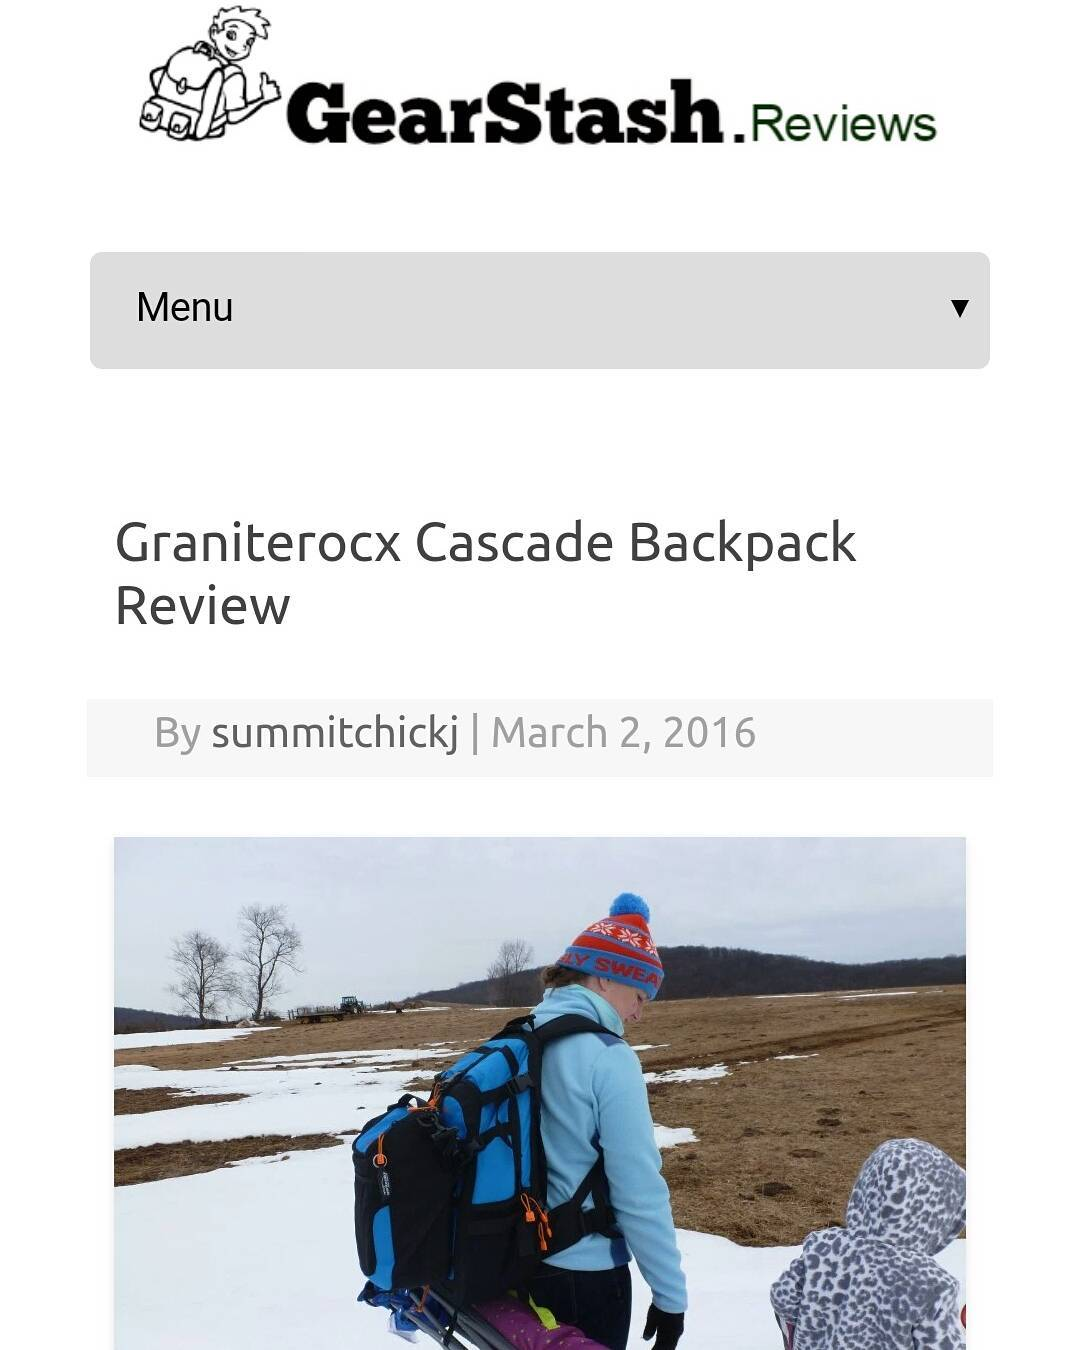 Check out the most recent review of our Cascade backpack and cooler! Thanks @gearstash and @summitchicks!  Go to www.graniterocx.com/gearstash  #reviews #getoutside #backpacks #coolers #gearstash #summitchicks #graniterocx #outdoorsrocx